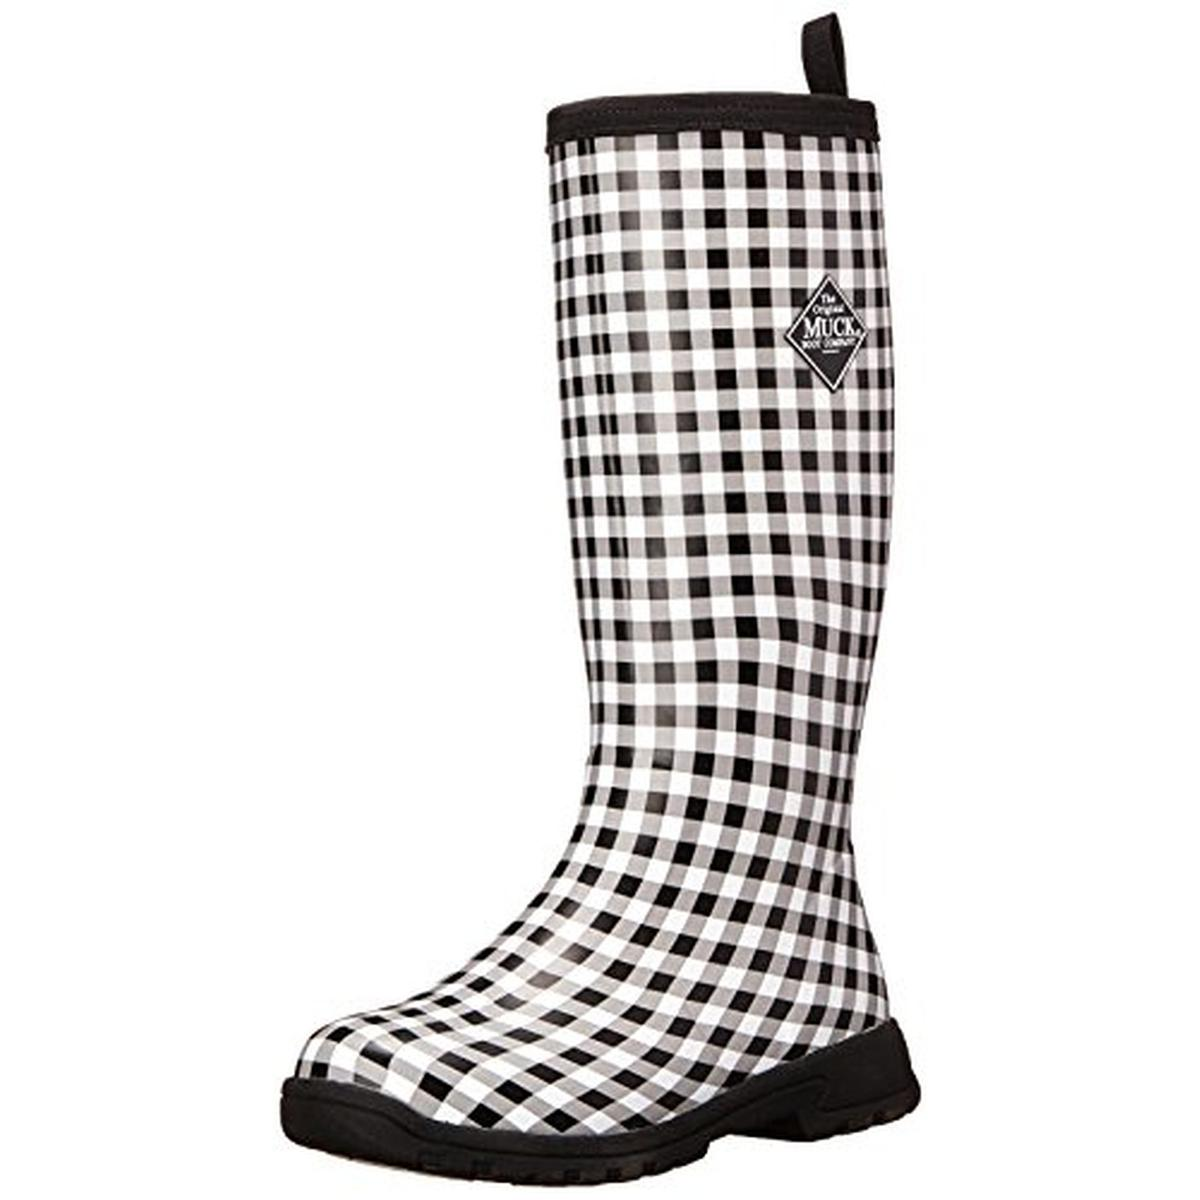 Muck Boot Womens Breezy Tall Rubber Knee-High Rain Boots - Walmart.com